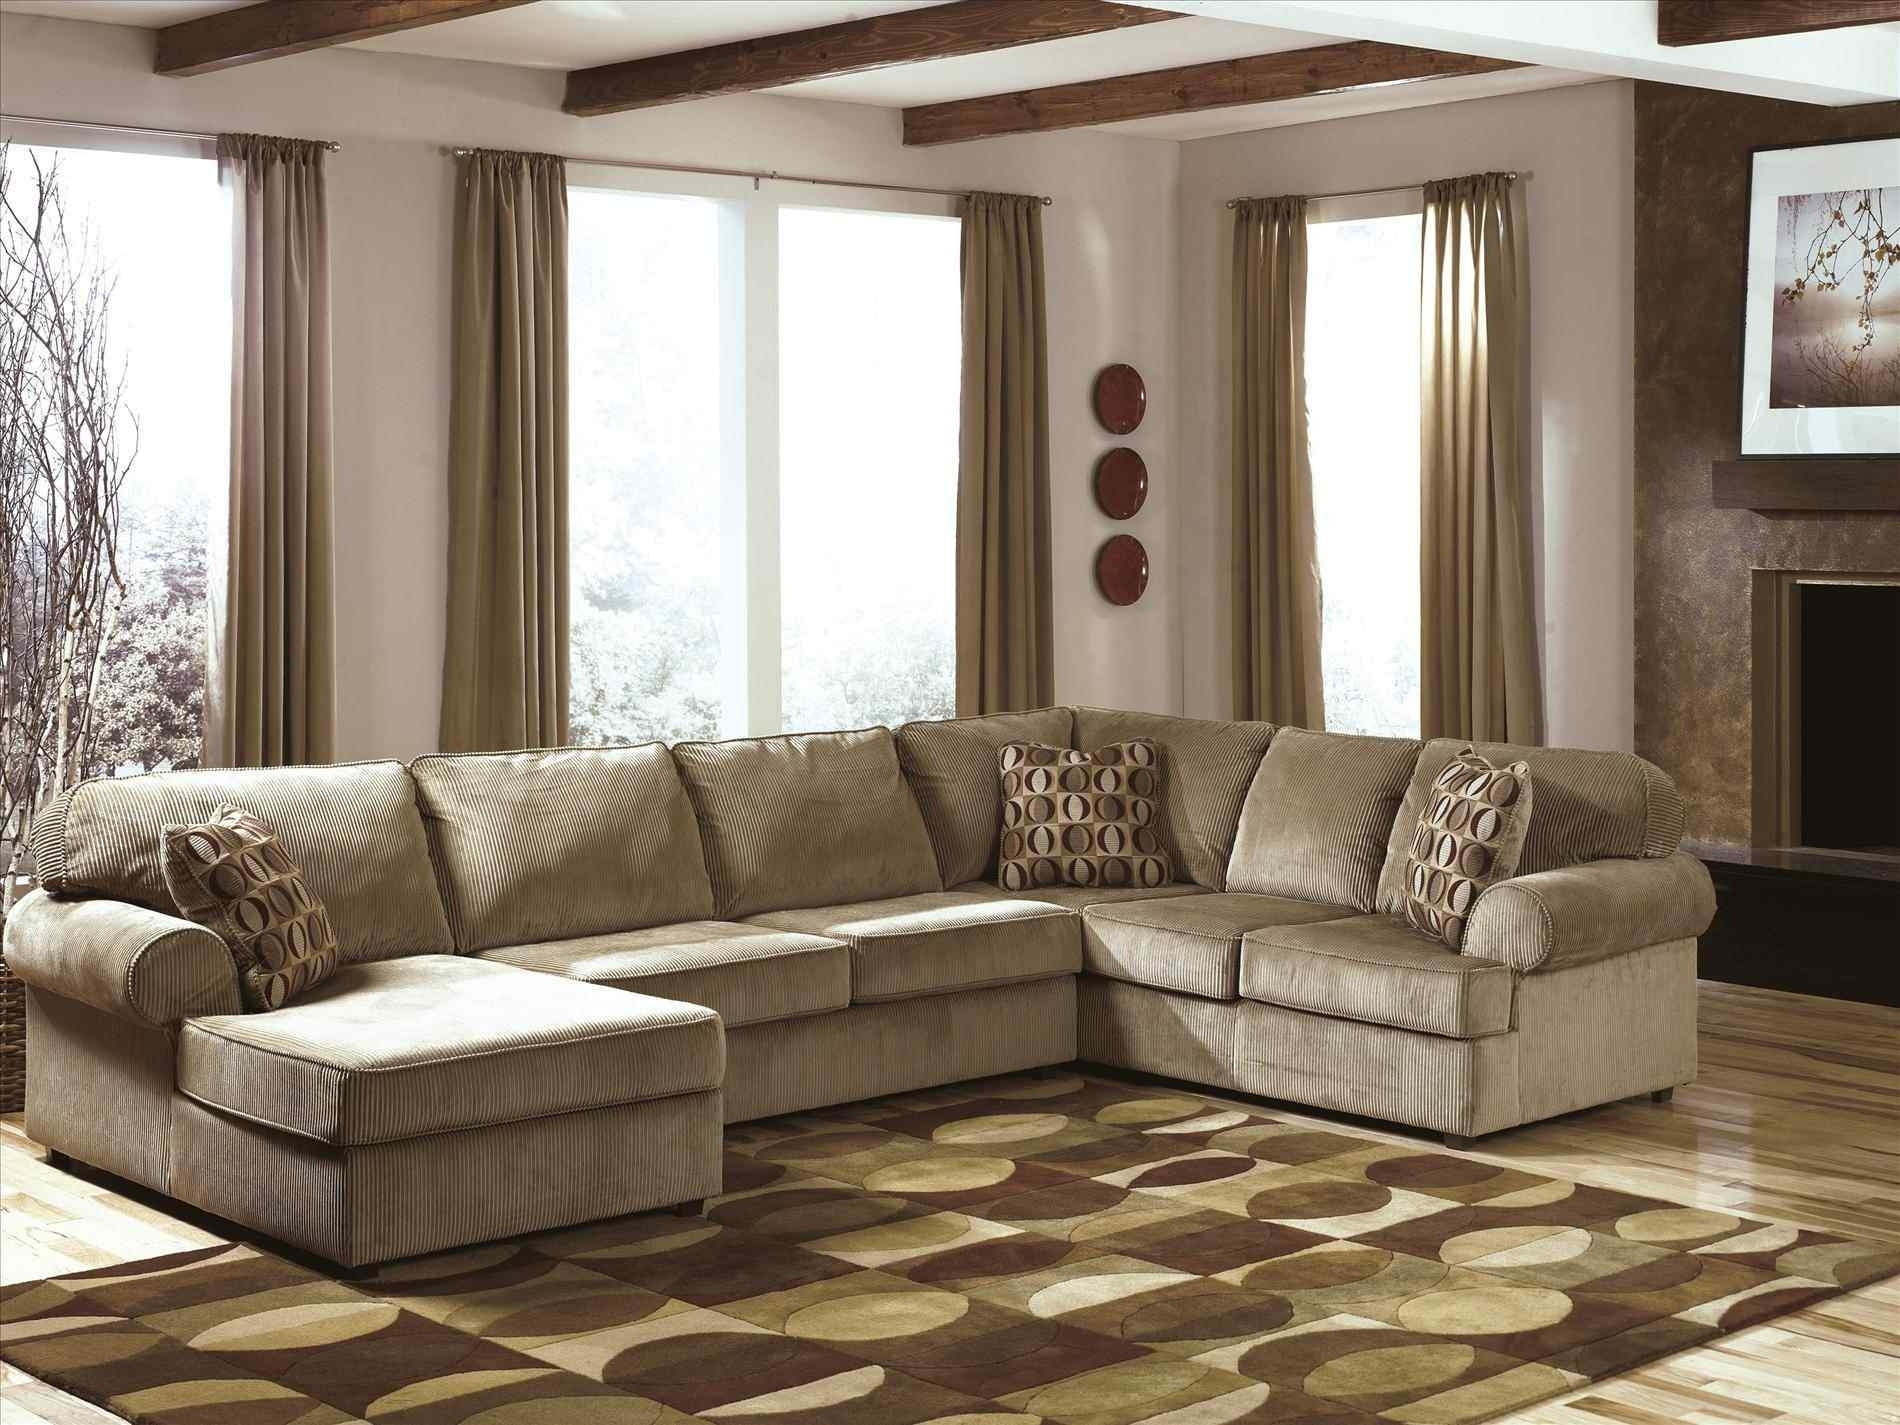 Sectional Sofas Cheap Tufted Ottoman Used Furniture Ottawa For Sale In Ottawa Sectional Sofas (Image 10 of 10)